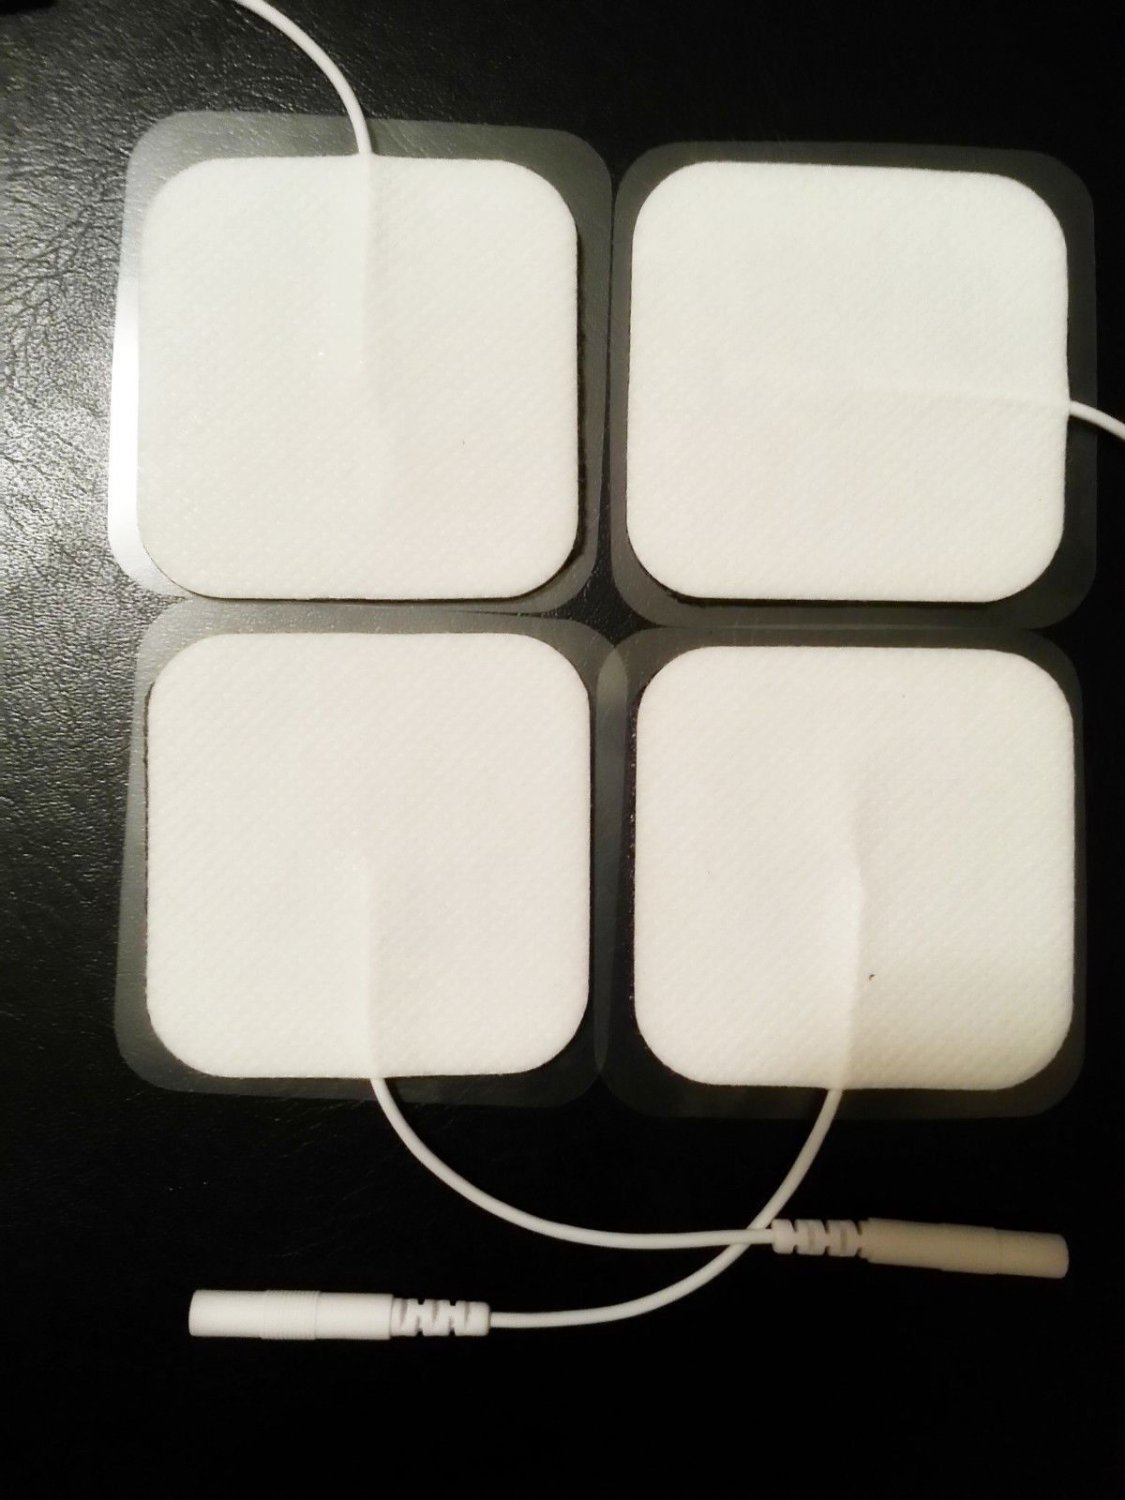 16 PC SQUARE REPLACEMENT ELECTRODE MASSAGE PADS-For MAGIC TOUCH PRO SERIES 104